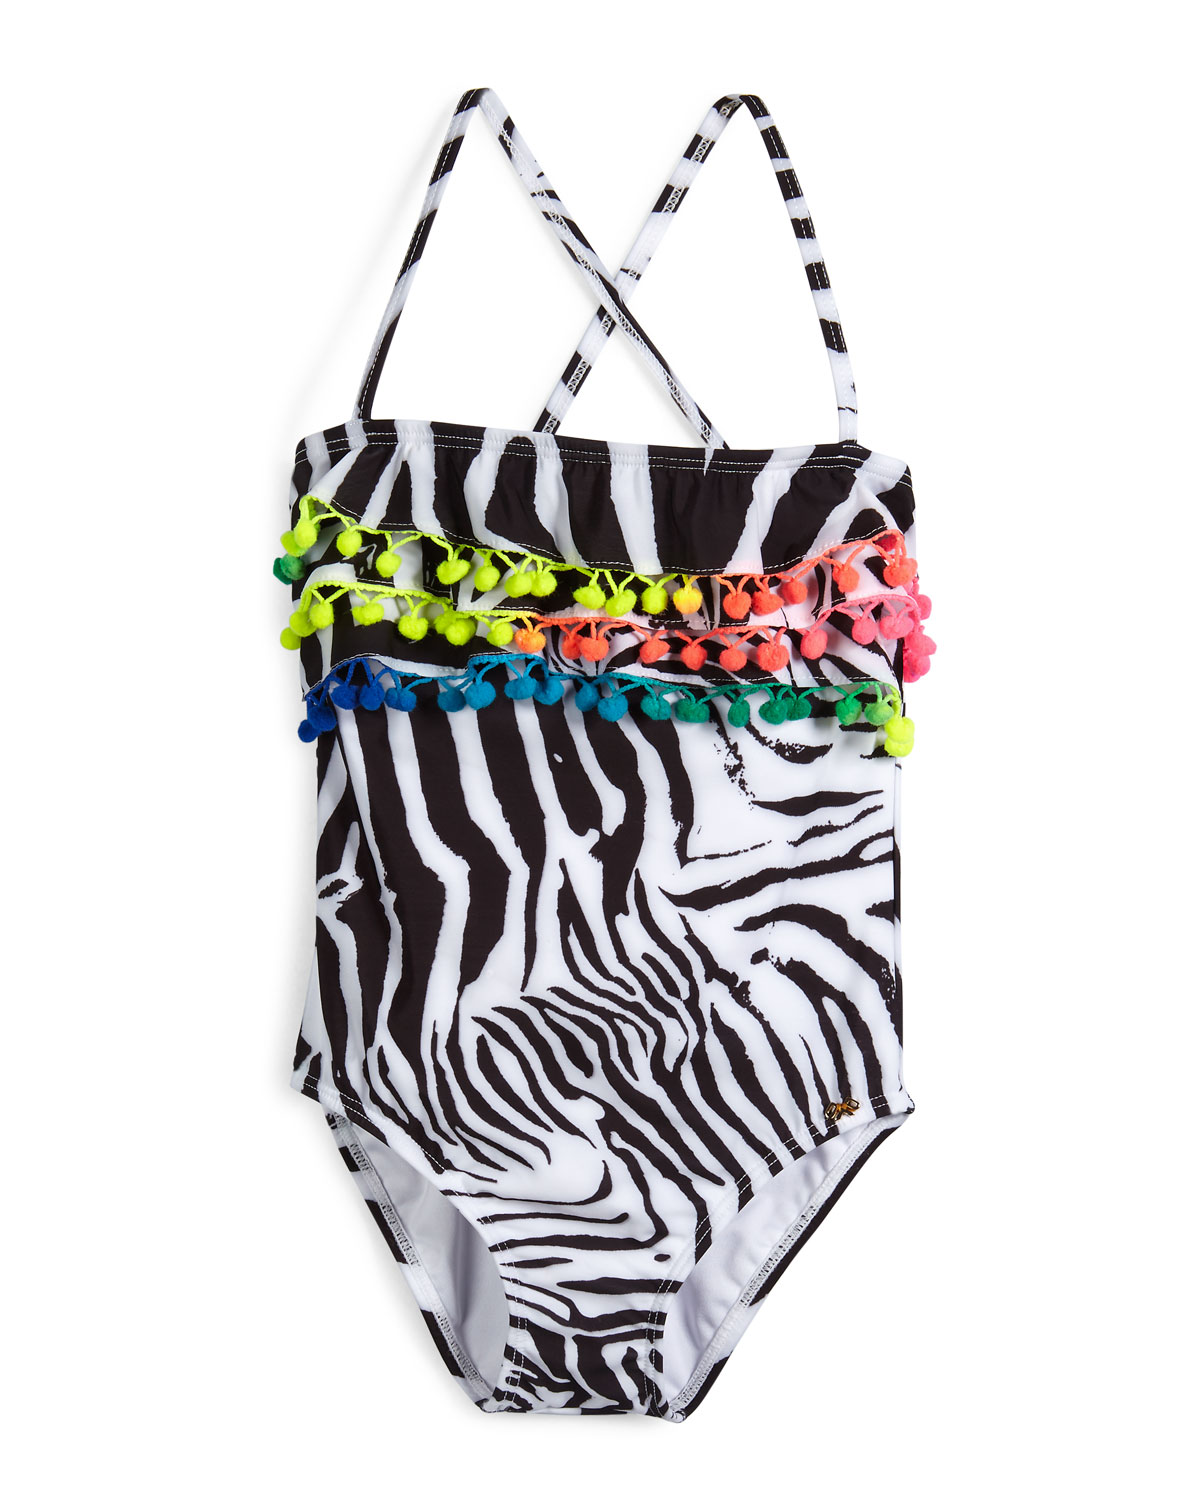 Zebra-Print One-Piece Swimsuit, African Rays, Girls' Size 2-10